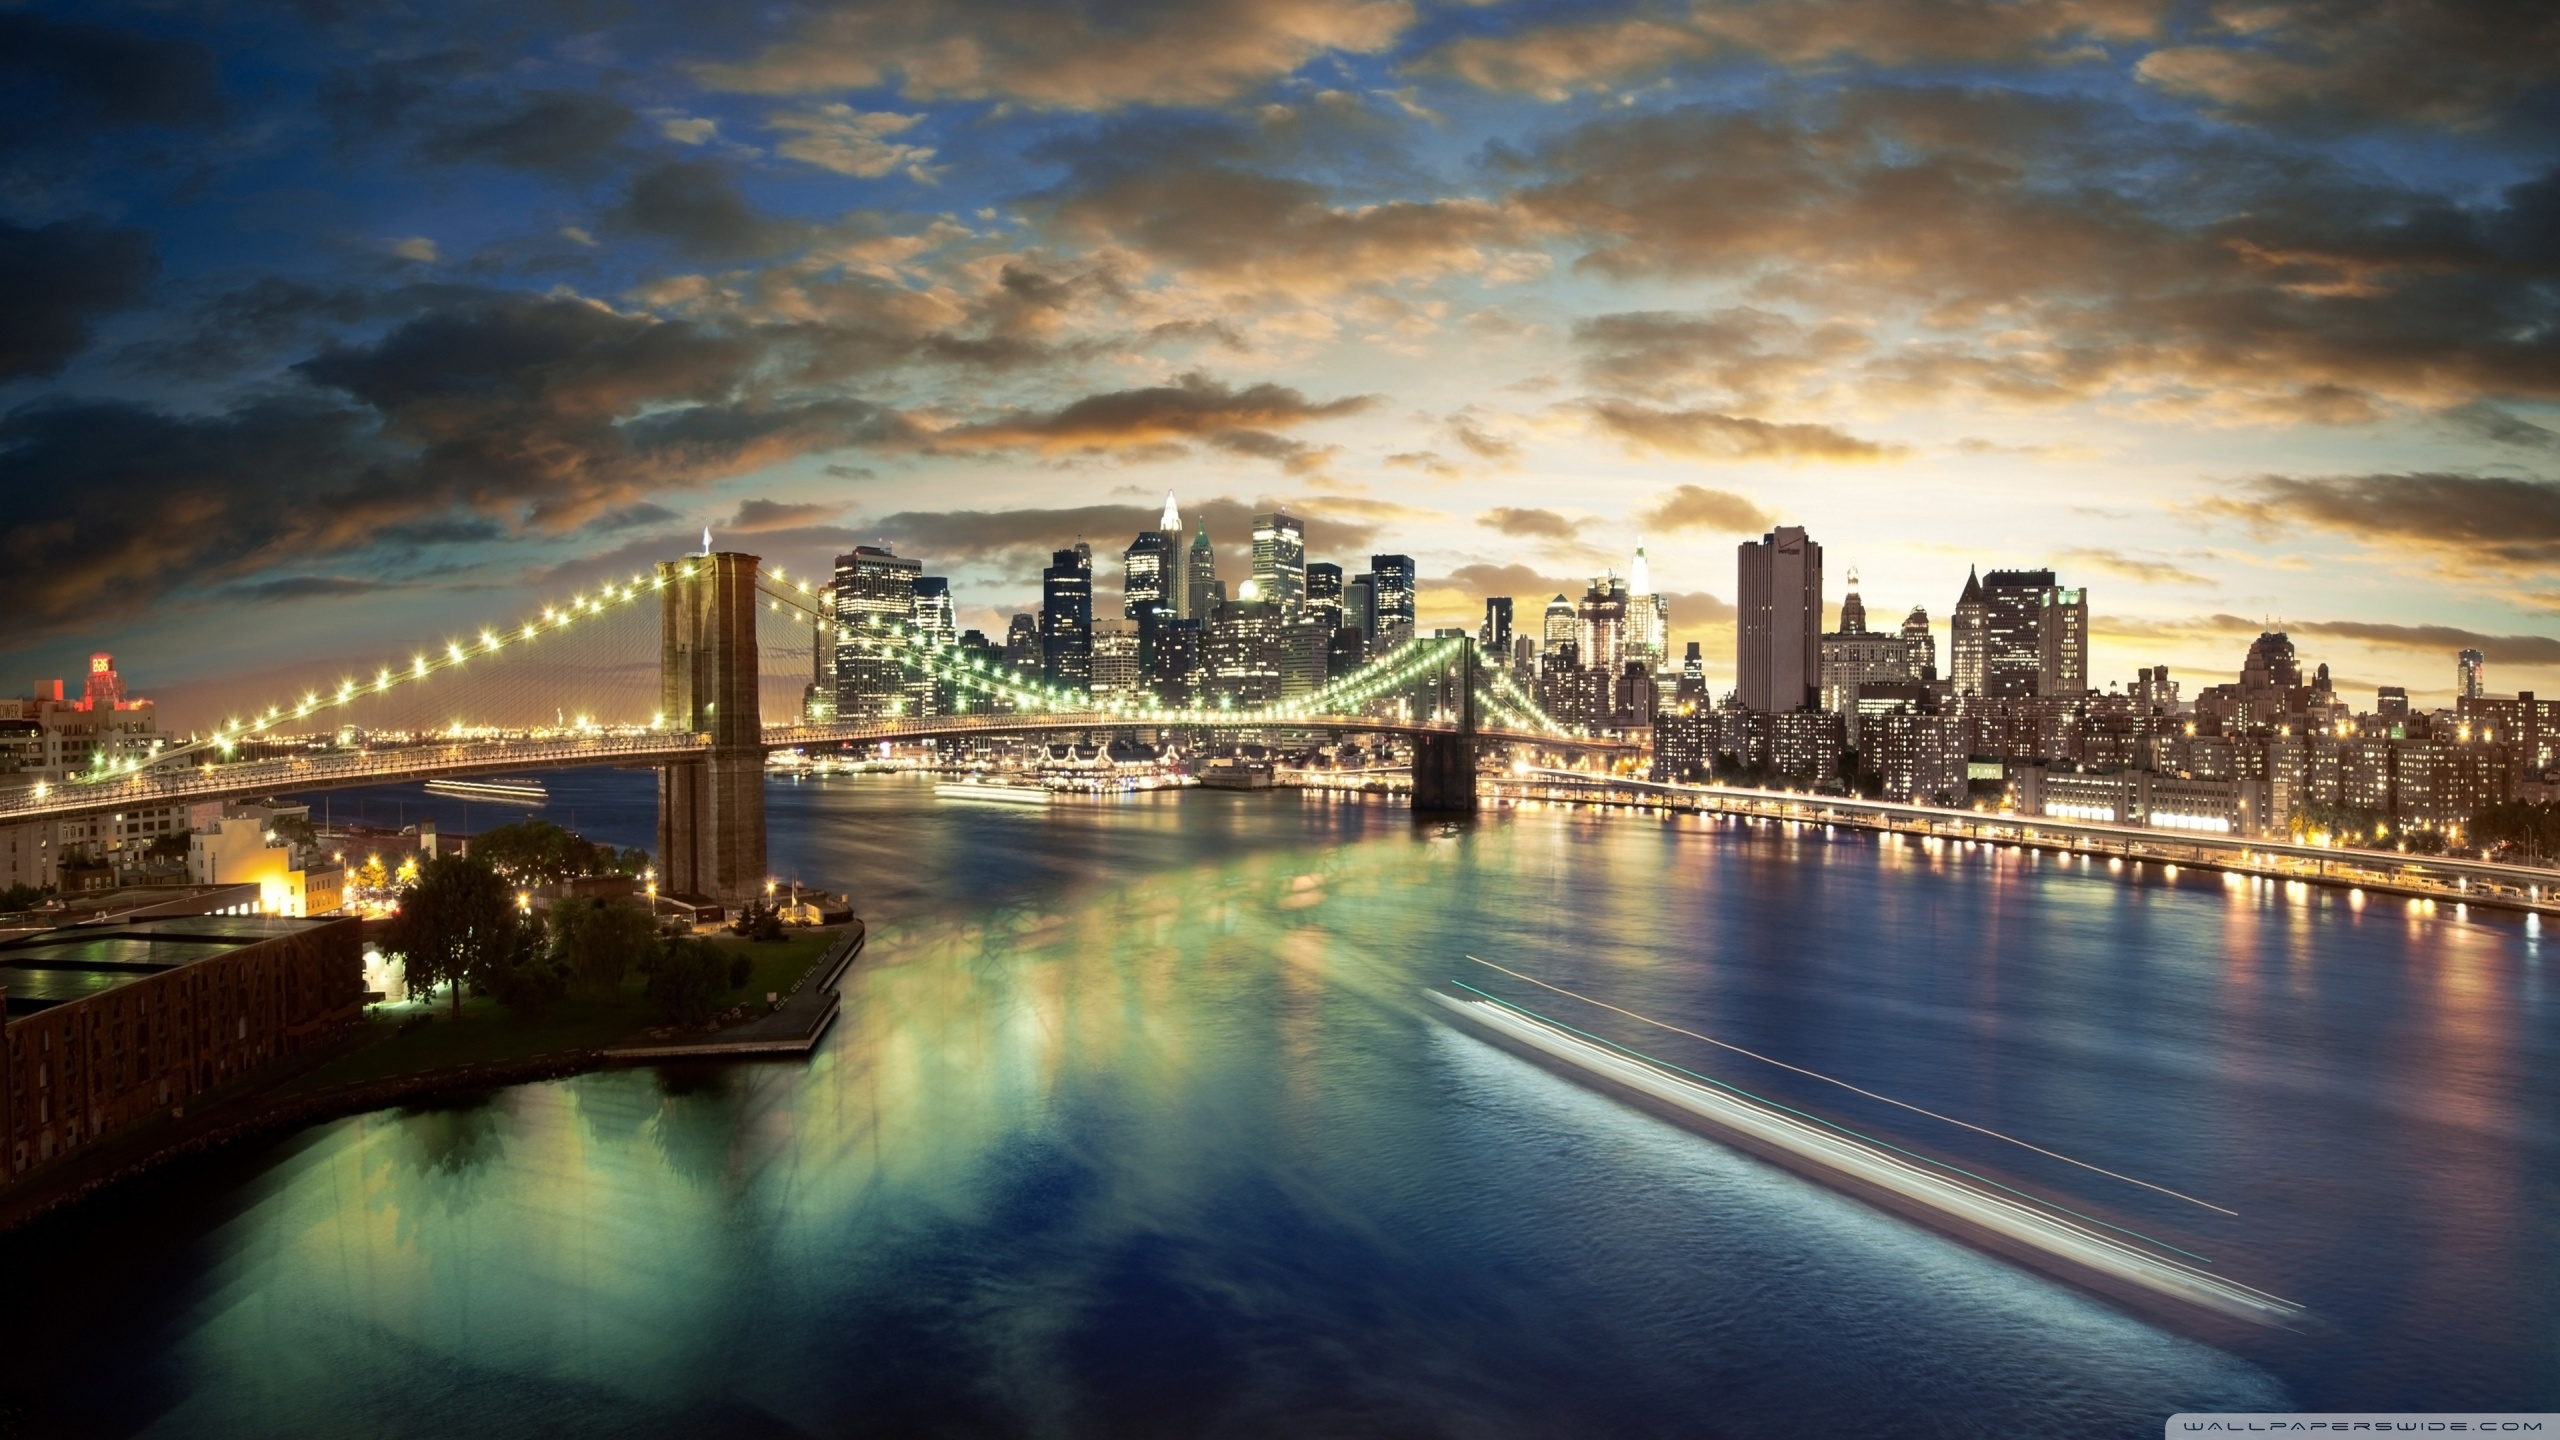 new york full hd wallpaper city brooklyn bridge wallpaper download 2560x1440